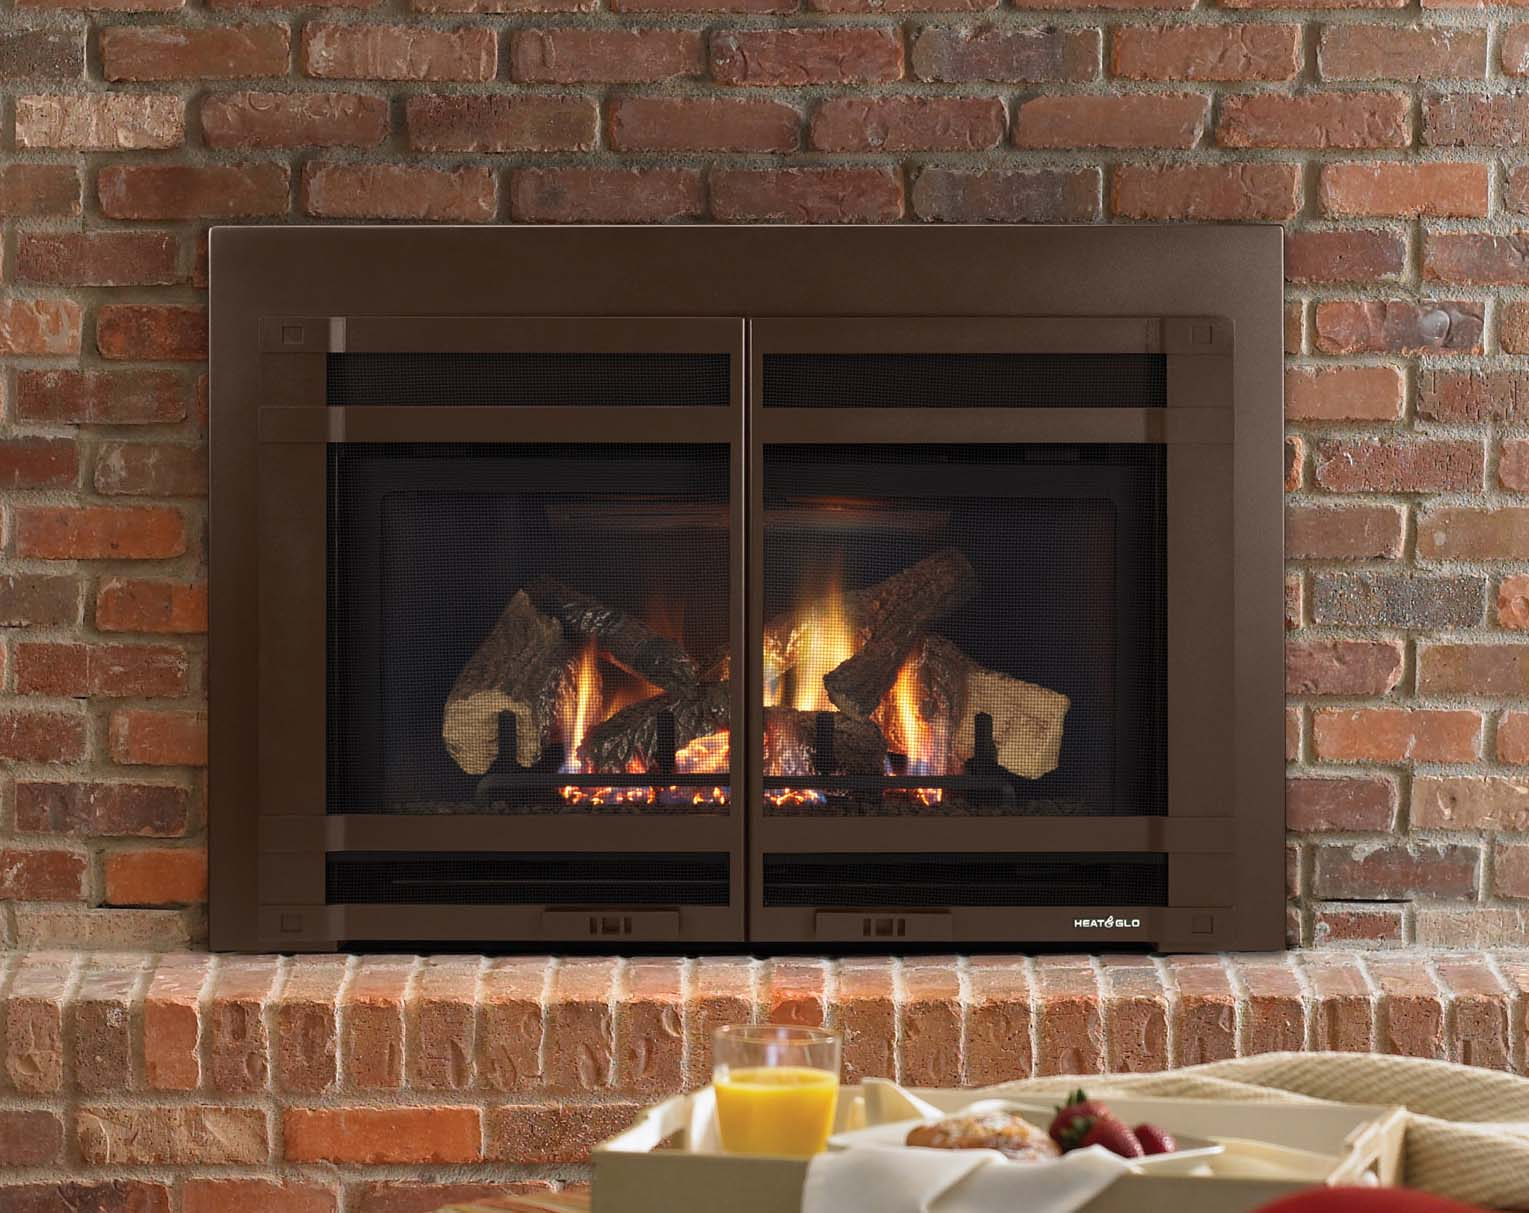 hearth and home technologies recalls gas fireplaces stoves